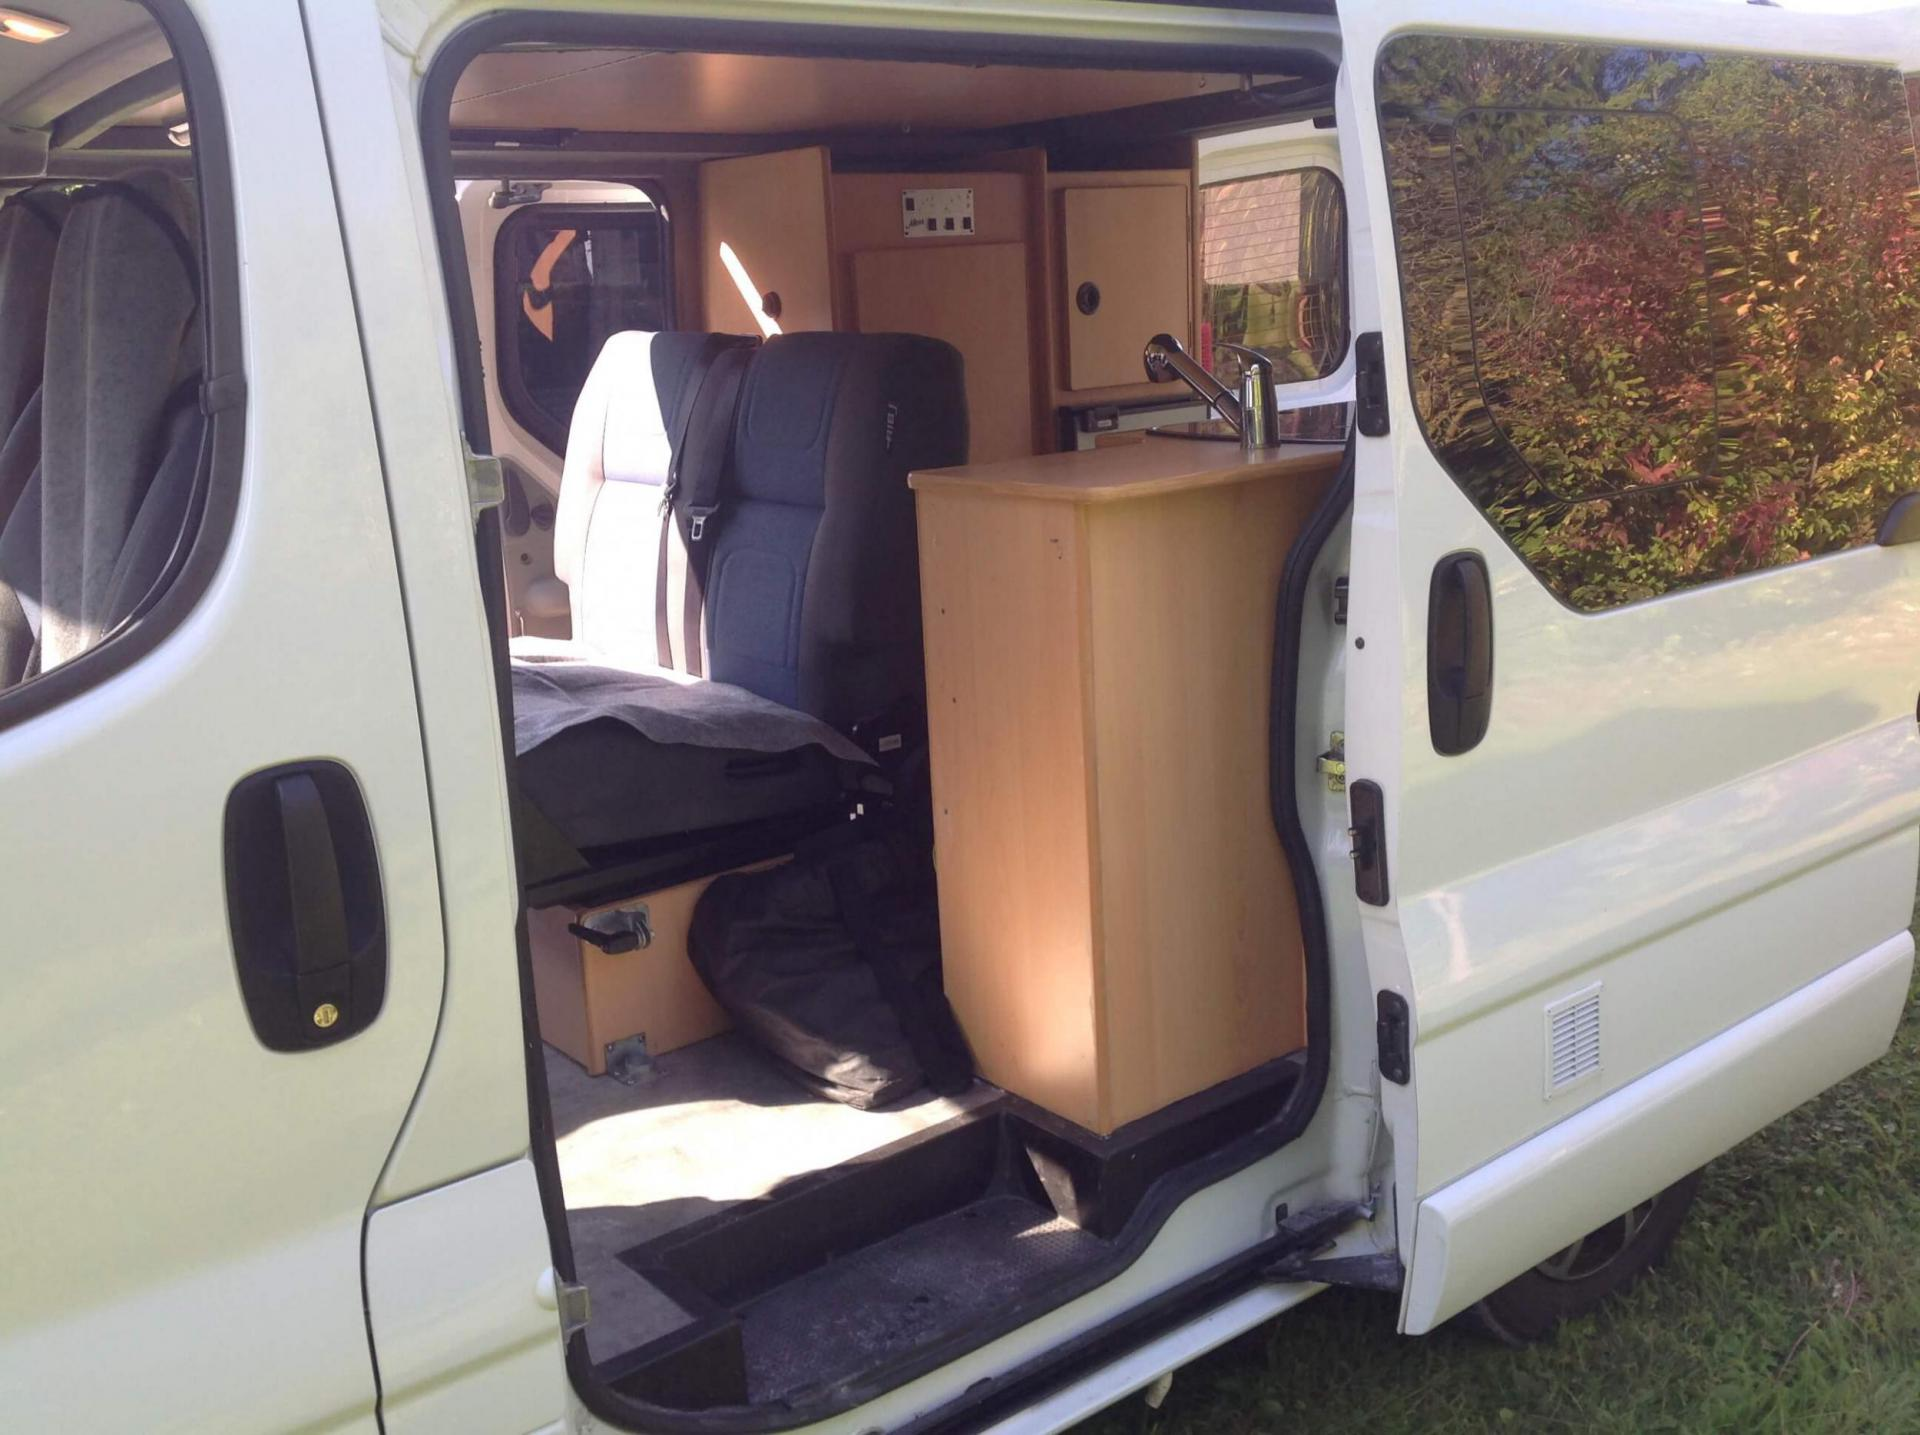 location camping car van la vallotte 10 renault trafic amenage toit relevable hapee. Black Bedroom Furniture Sets. Home Design Ideas